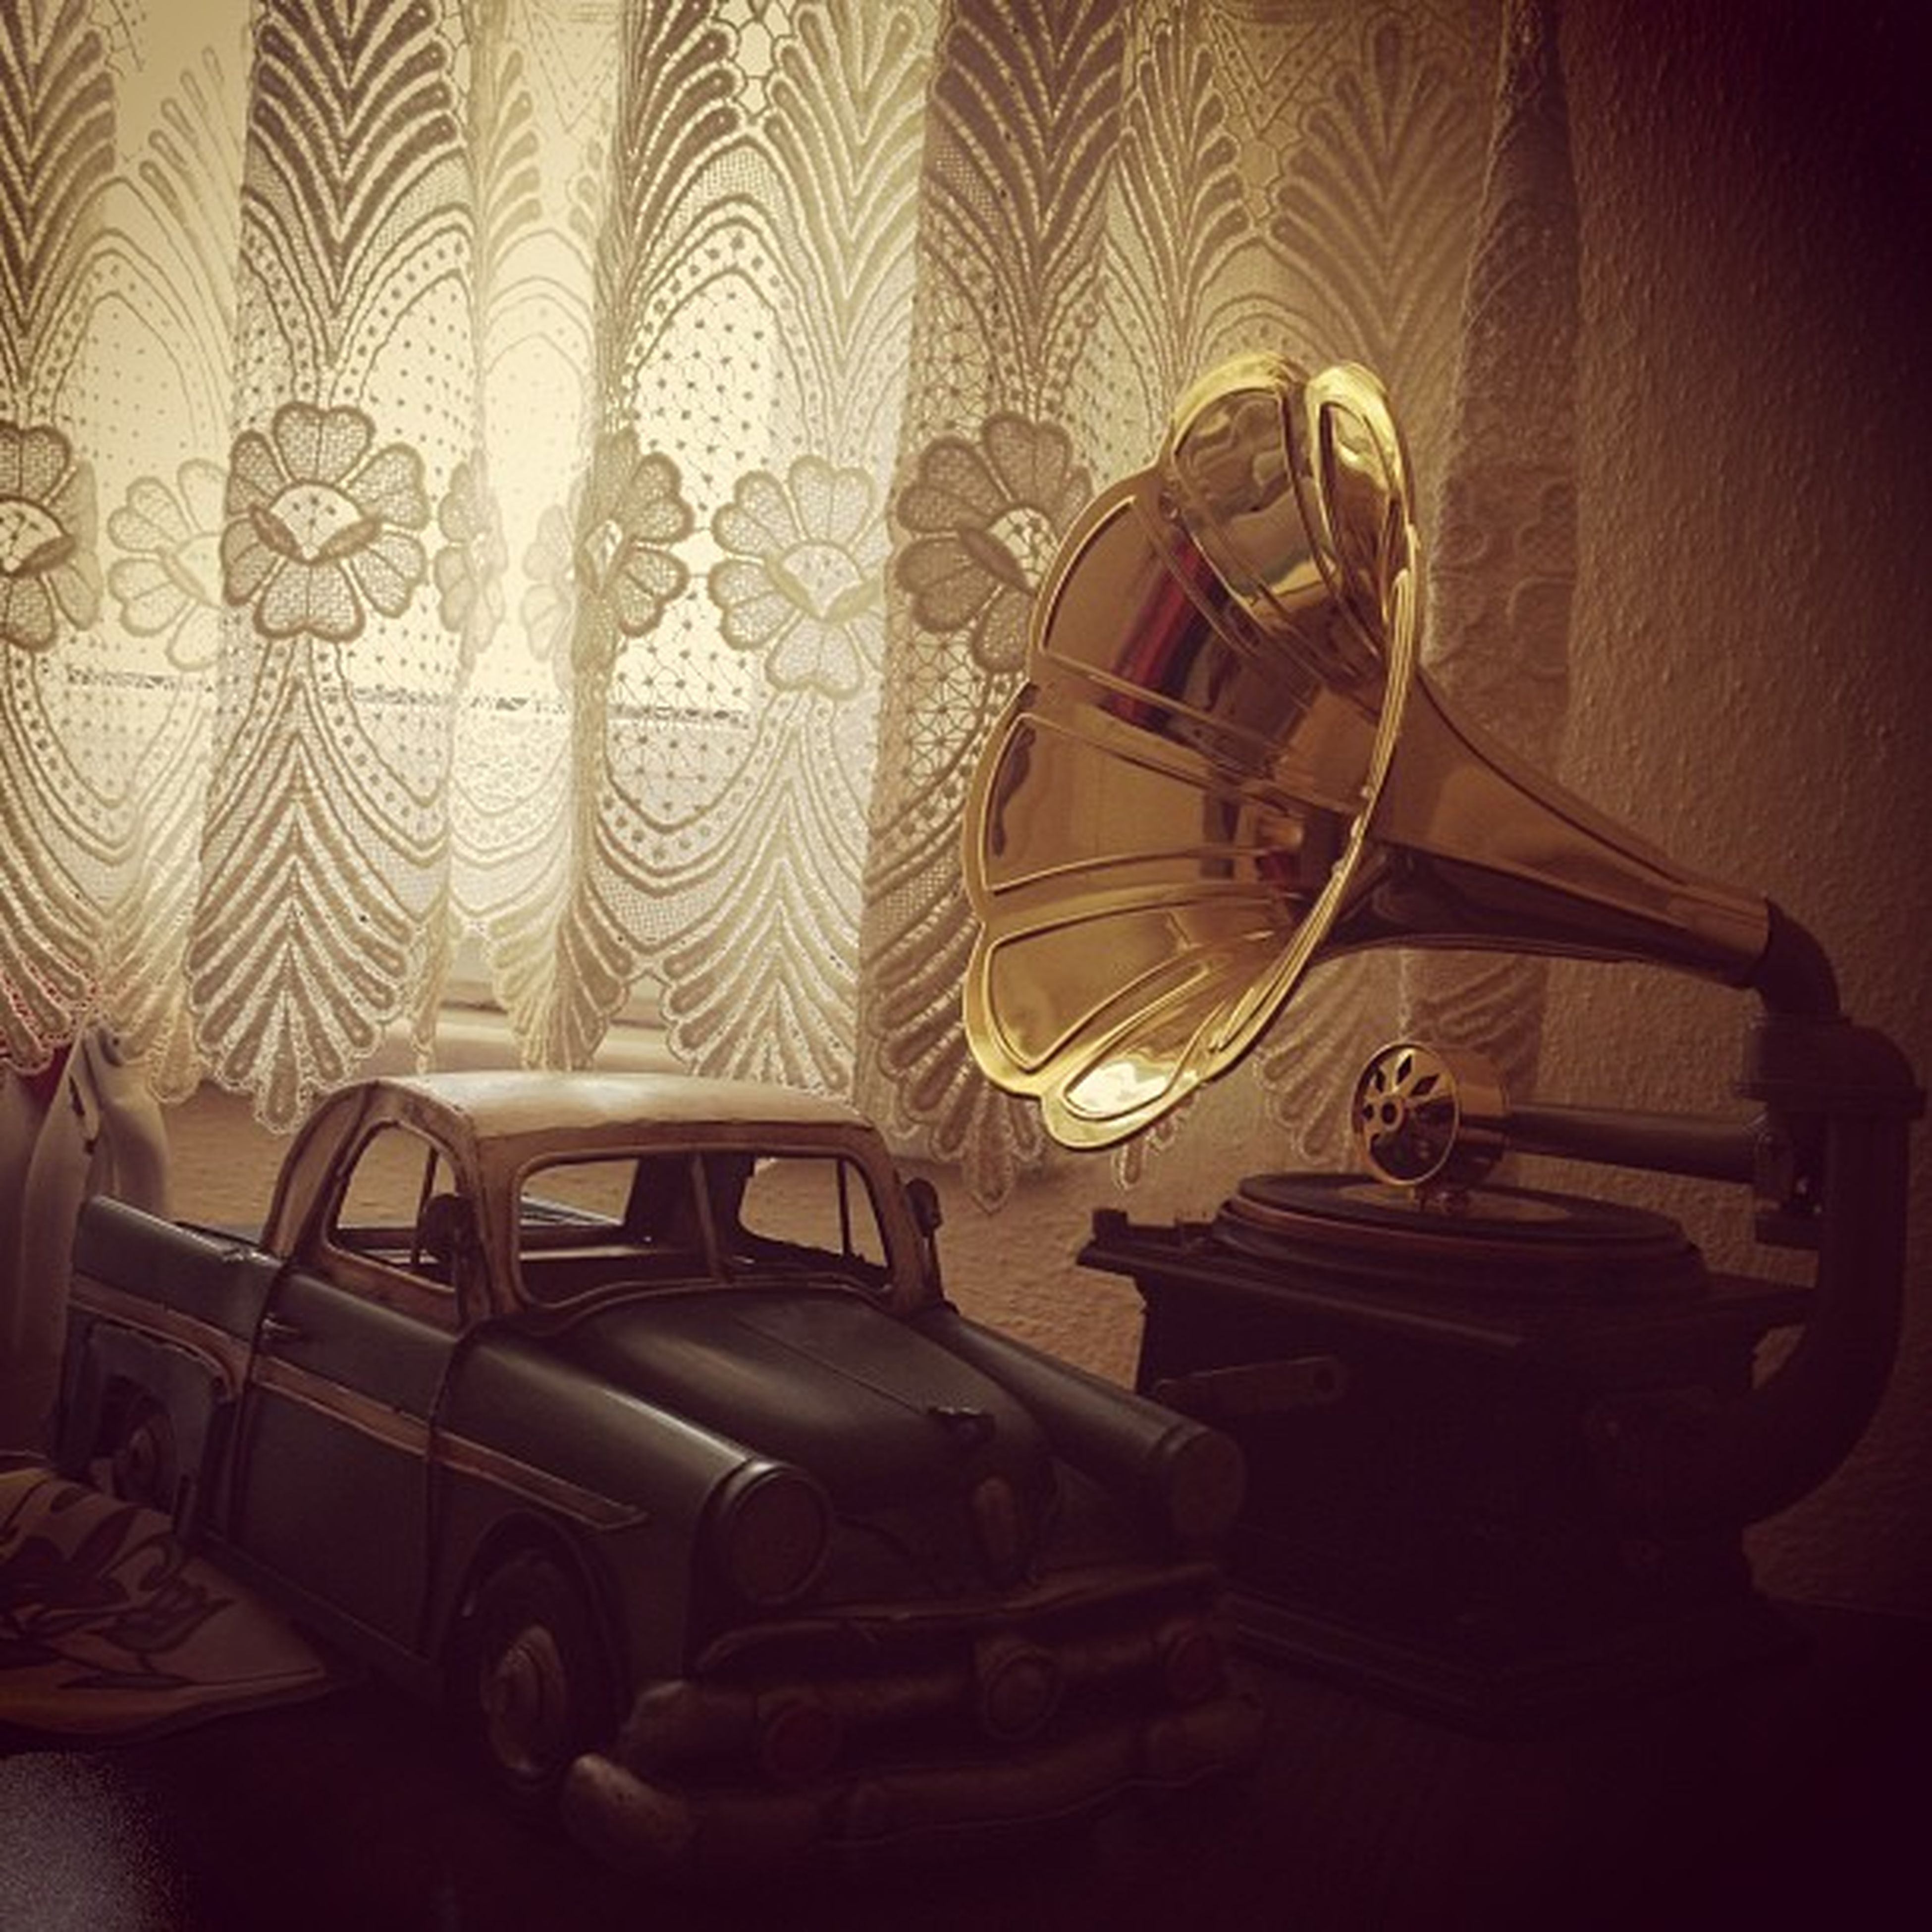 indoors, home interior, ceiling, illuminated, arts culture and entertainment, wall - building feature, no people, old-fashioned, pattern, interior, technology, absence, lighting equipment, chair, design, chandelier, hanging, room, still life, luxury